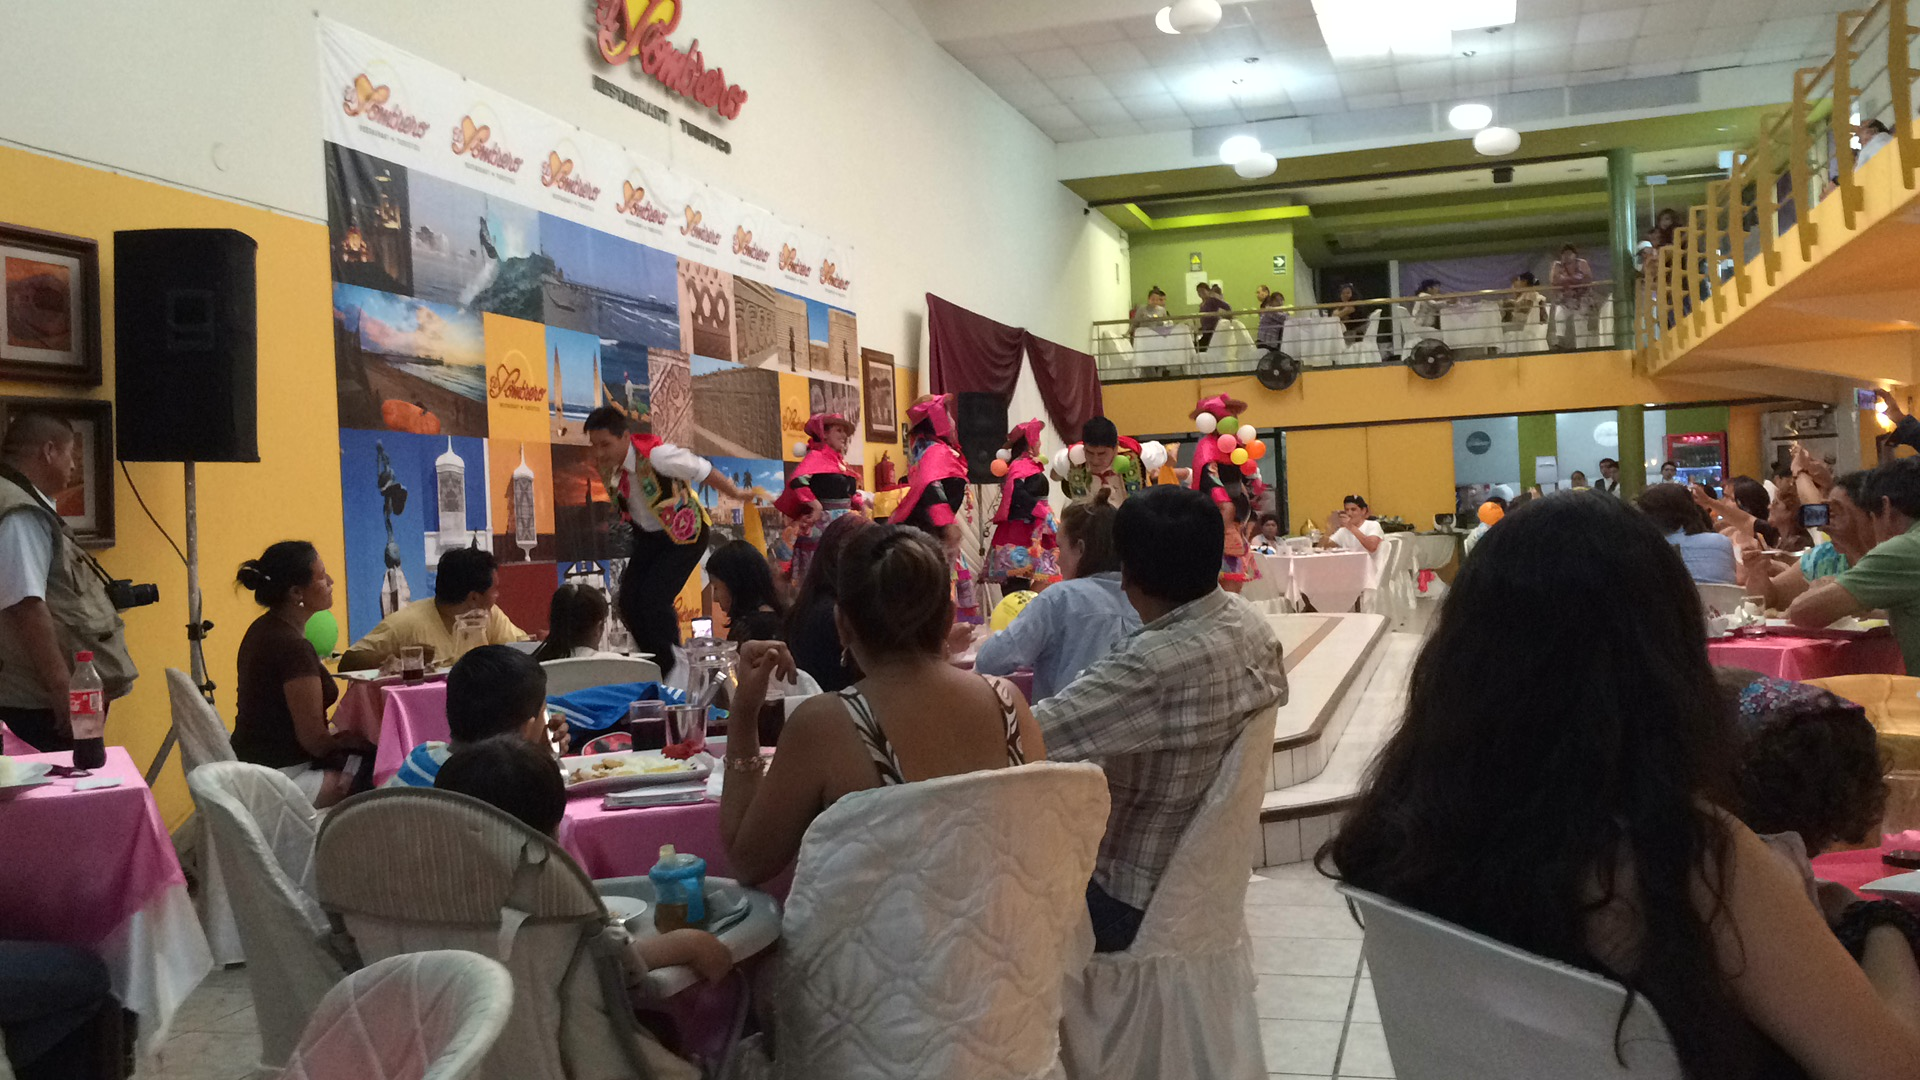 Our lunch show